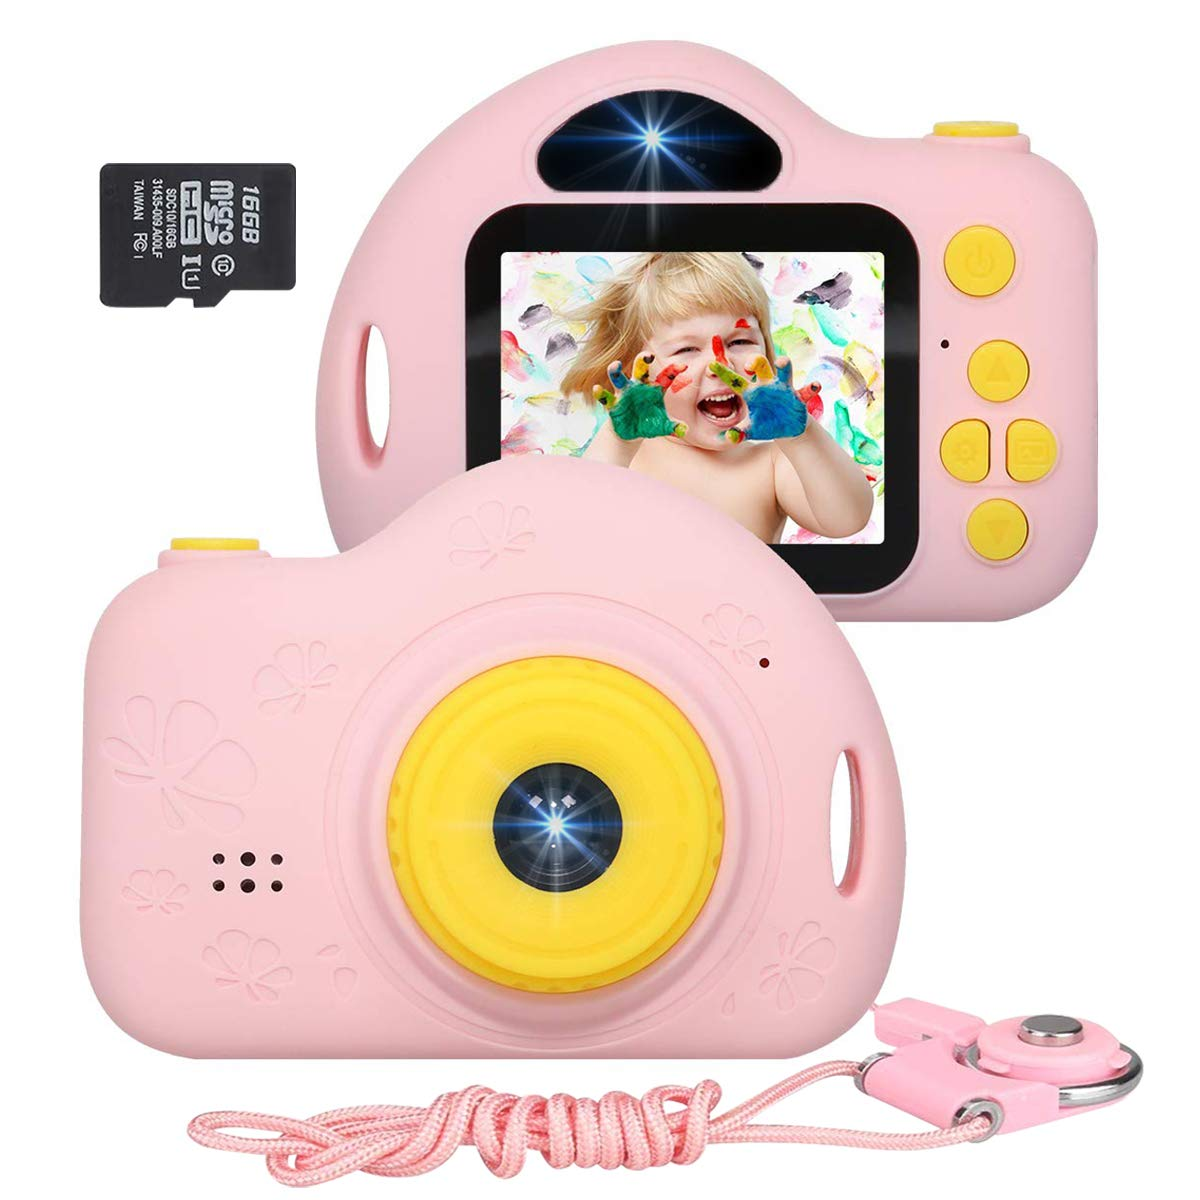 B07VK7C3WD JLtech Kids Camera, Digital Video Recorder Camera for Girls, Rechargeable Shockproof Mini Children Camera Toys with 16GB Card Included, 2019 Newest Version (Pink), JLtech002 61HPsKX-NuL